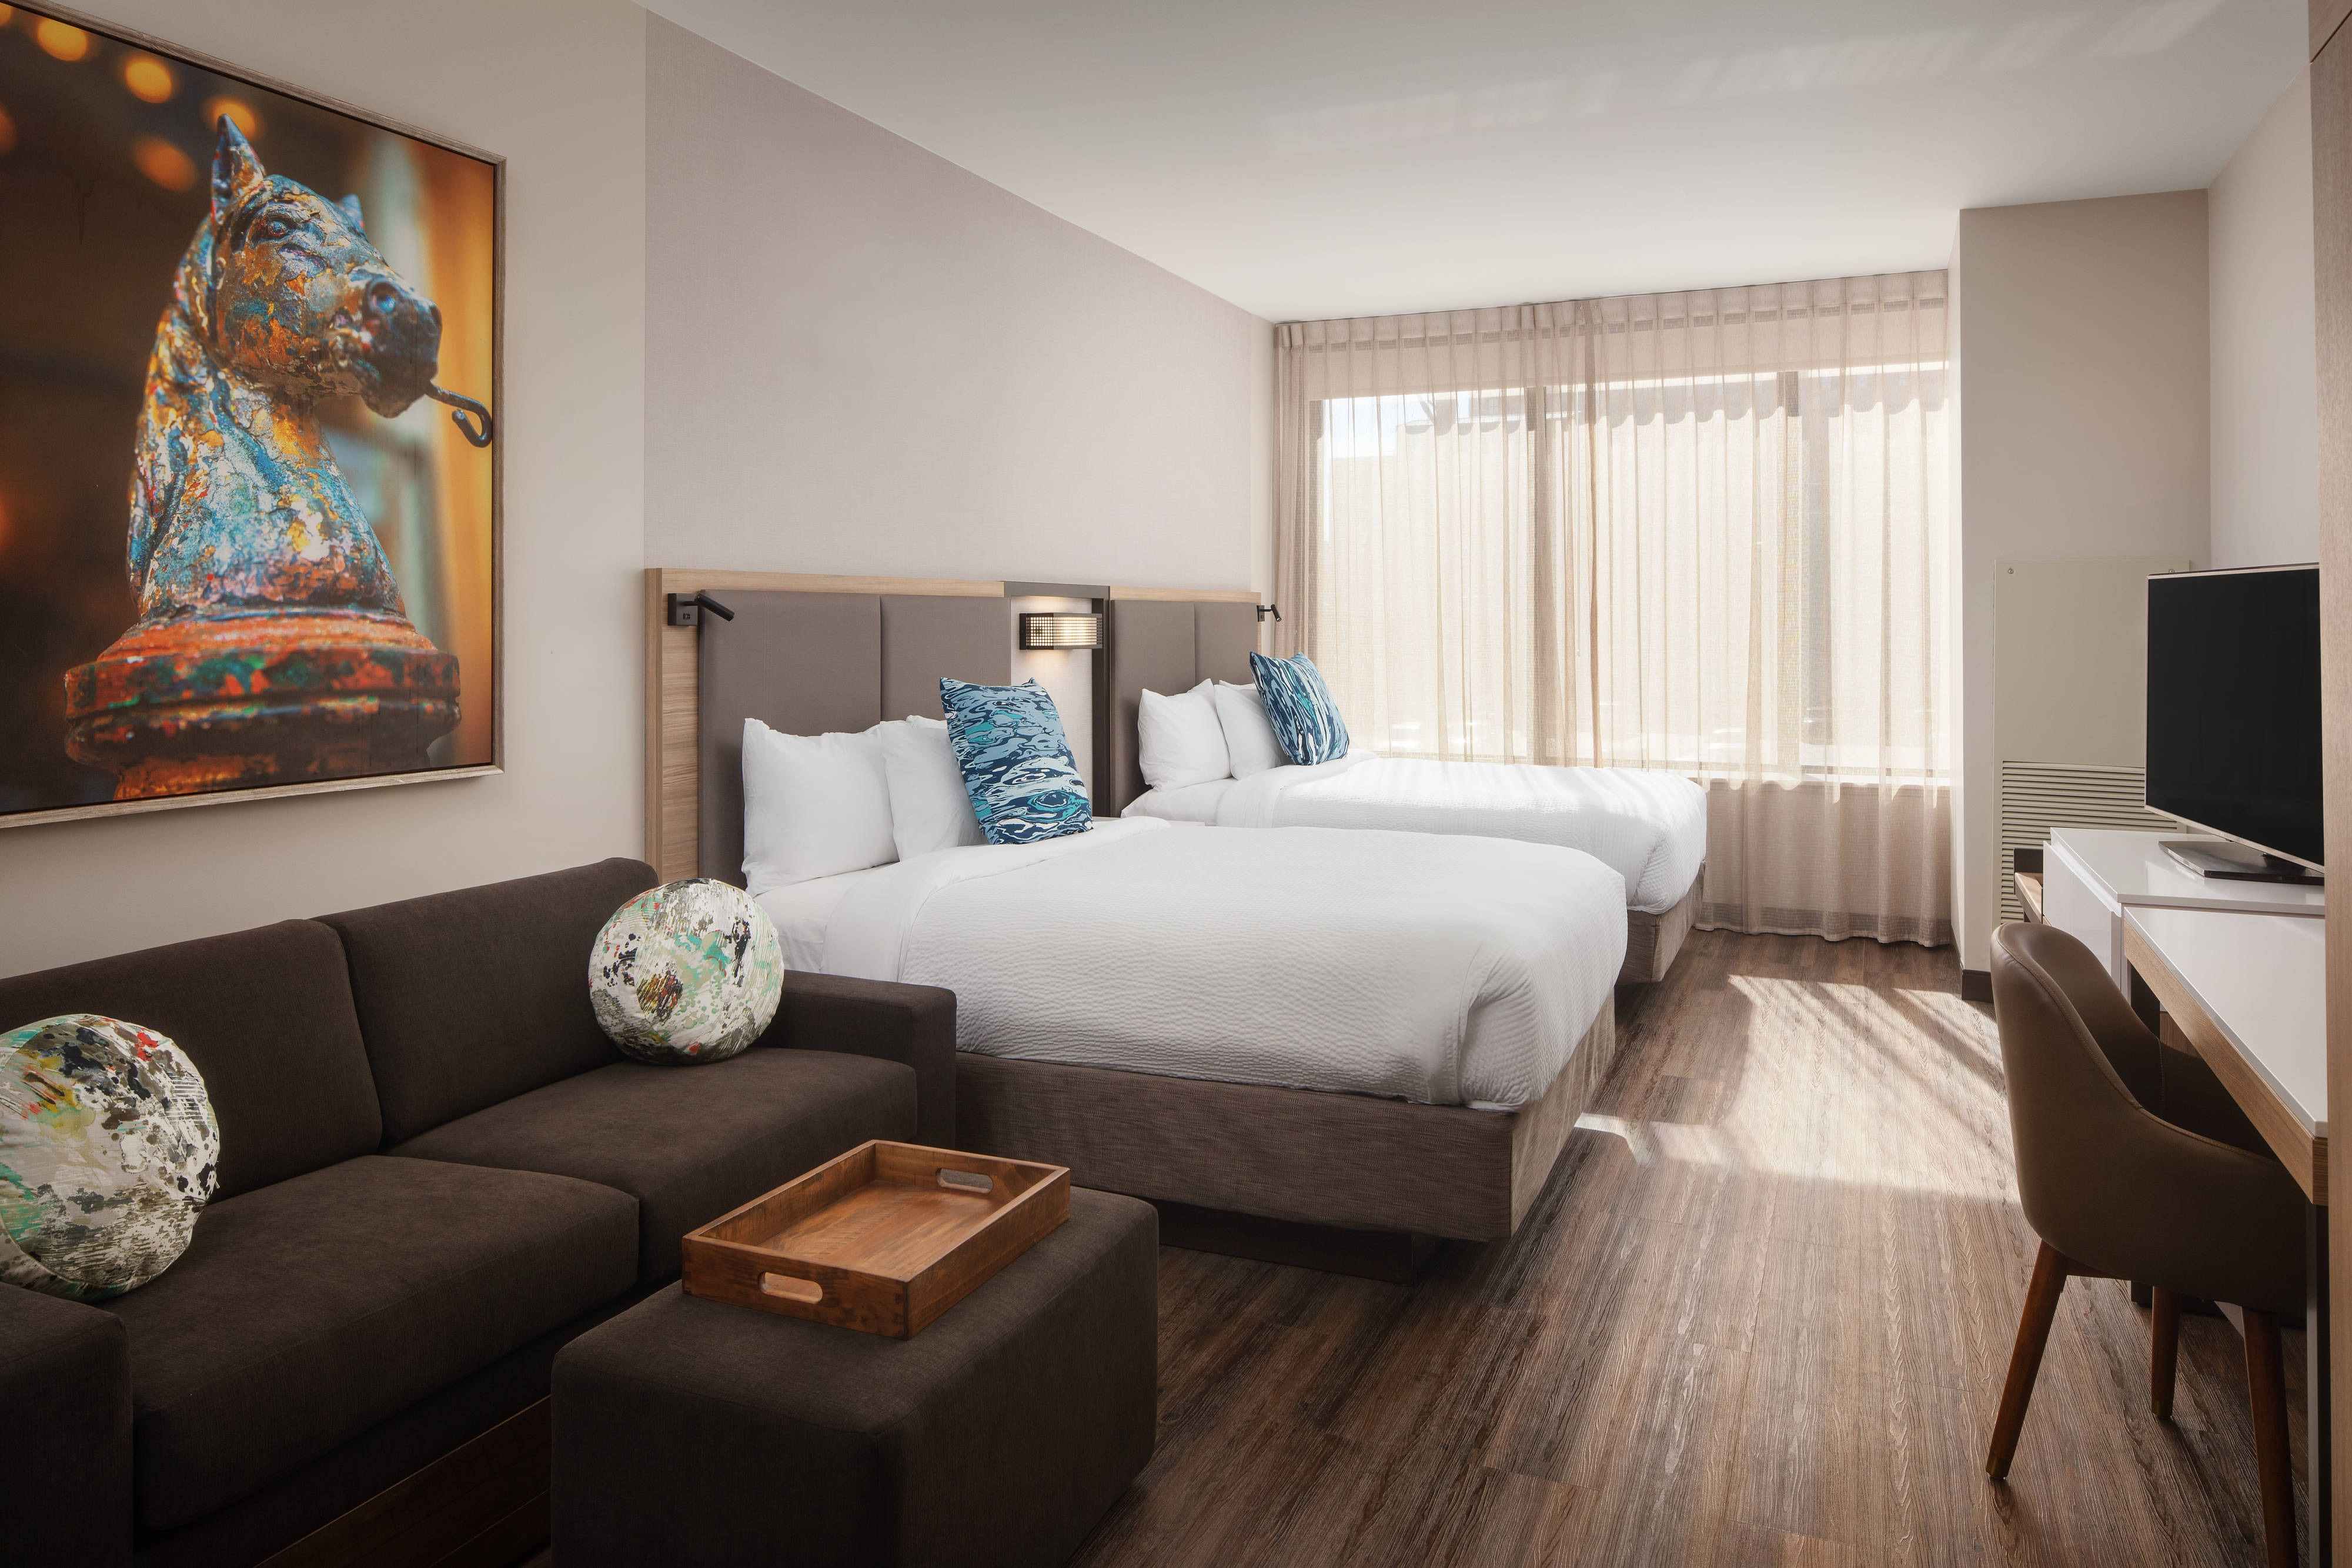 Hotels in downtown new orleans springhill suites new - Suites in new orleans with 2 bedrooms ...